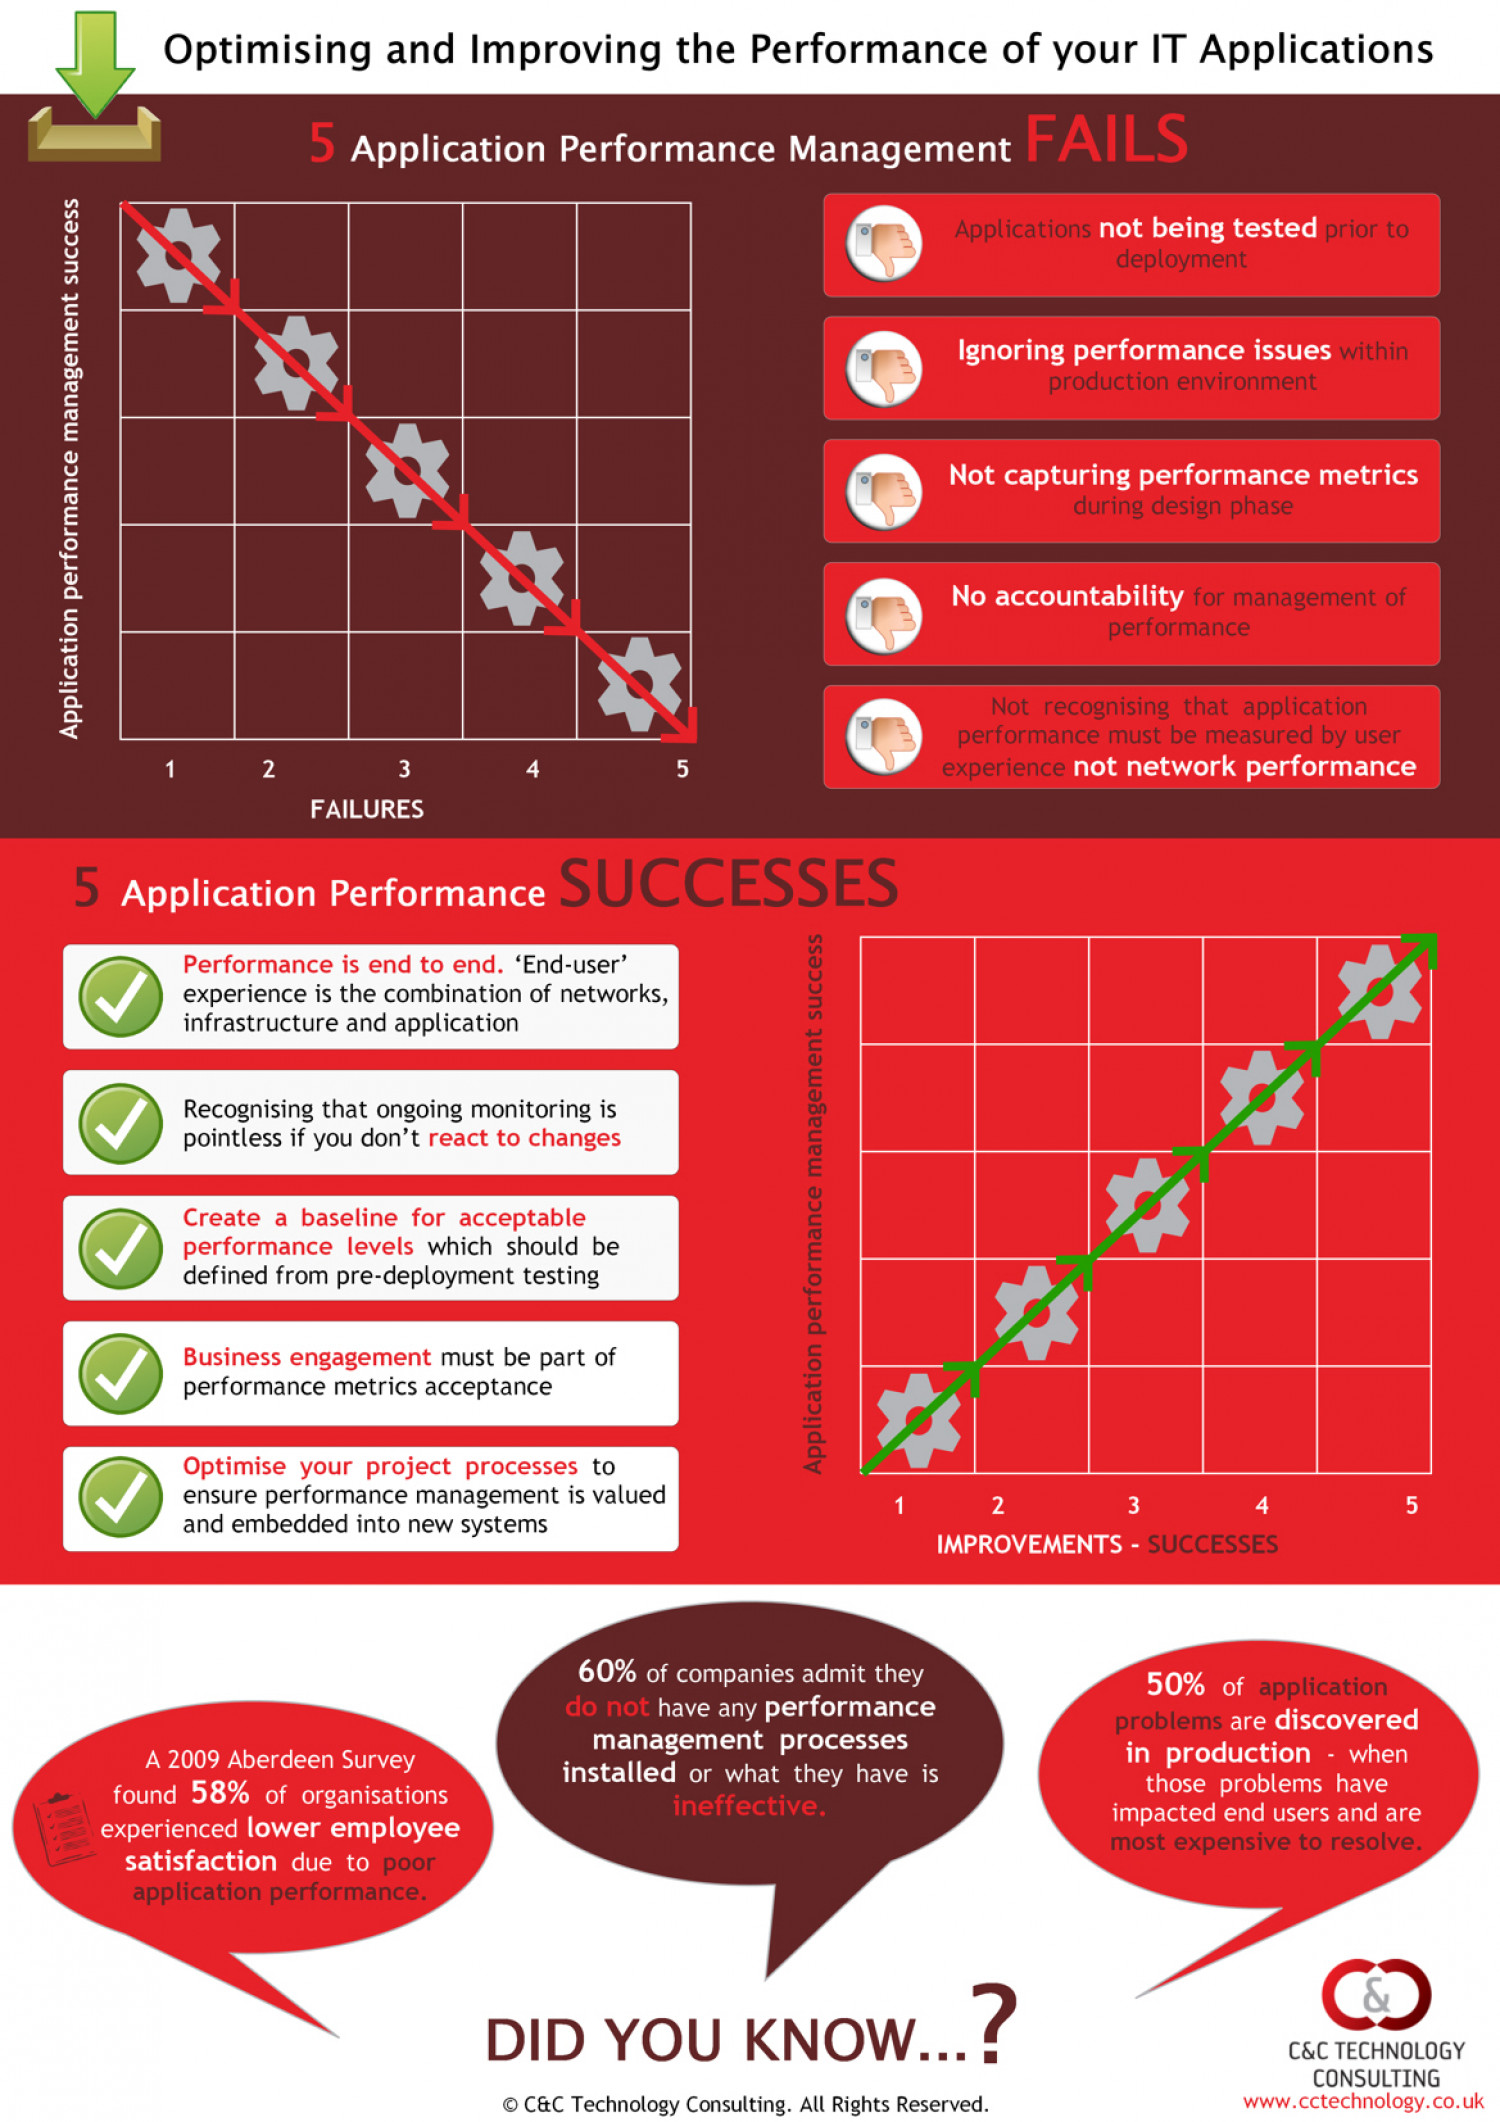 Optimising and improving the performance of your IT applications Infographic